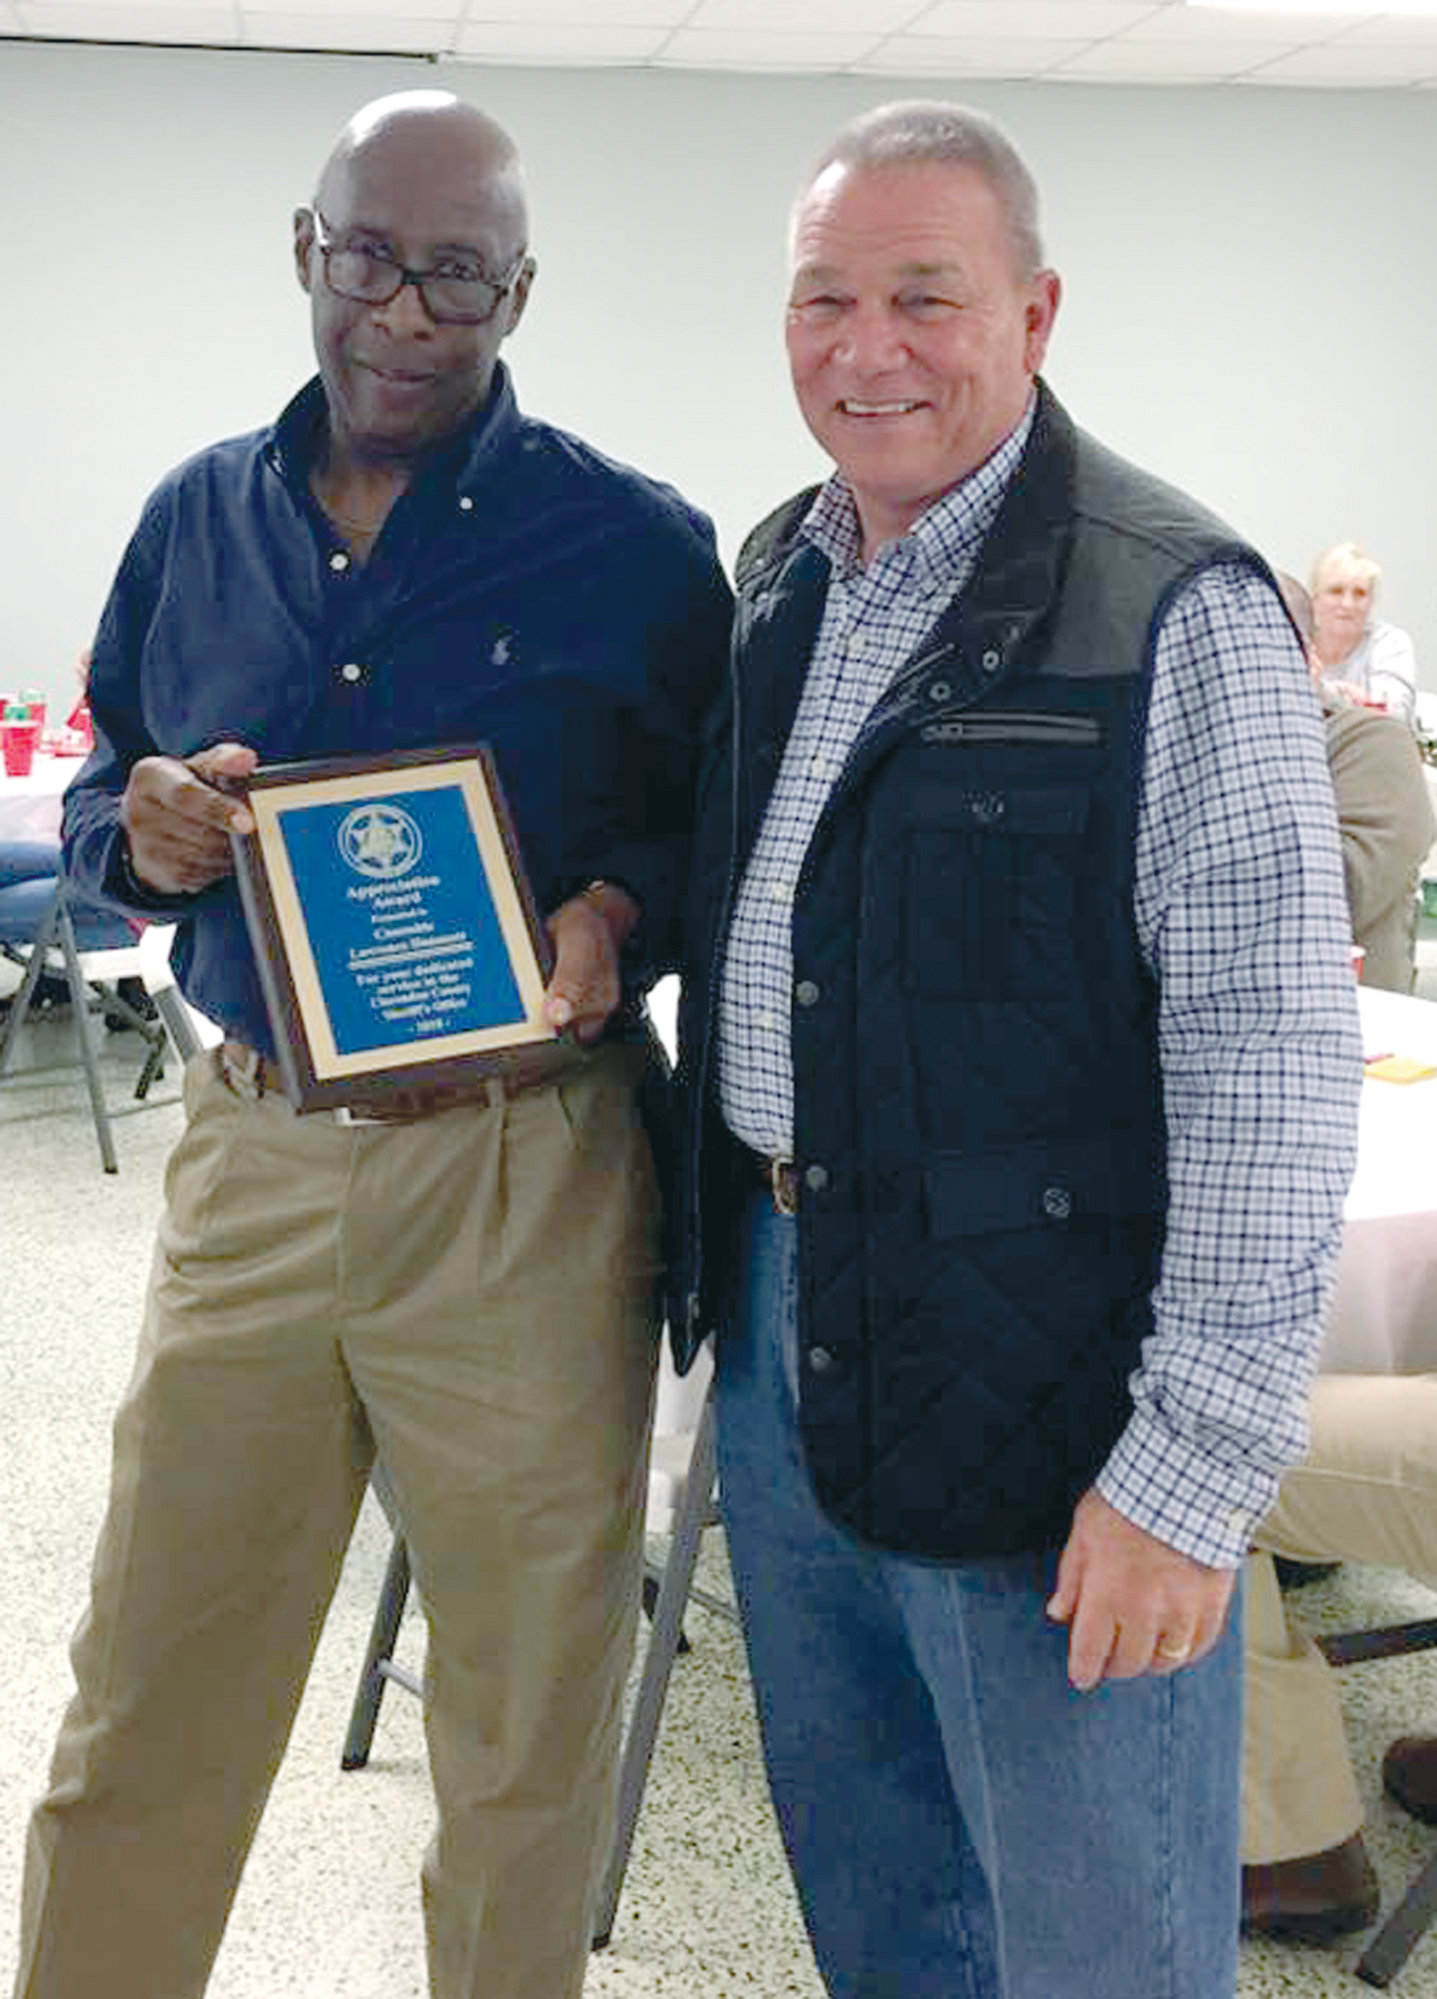 Clarendon County Constable Lawrence Hammett was awarded the 2018 Appreciation Award.